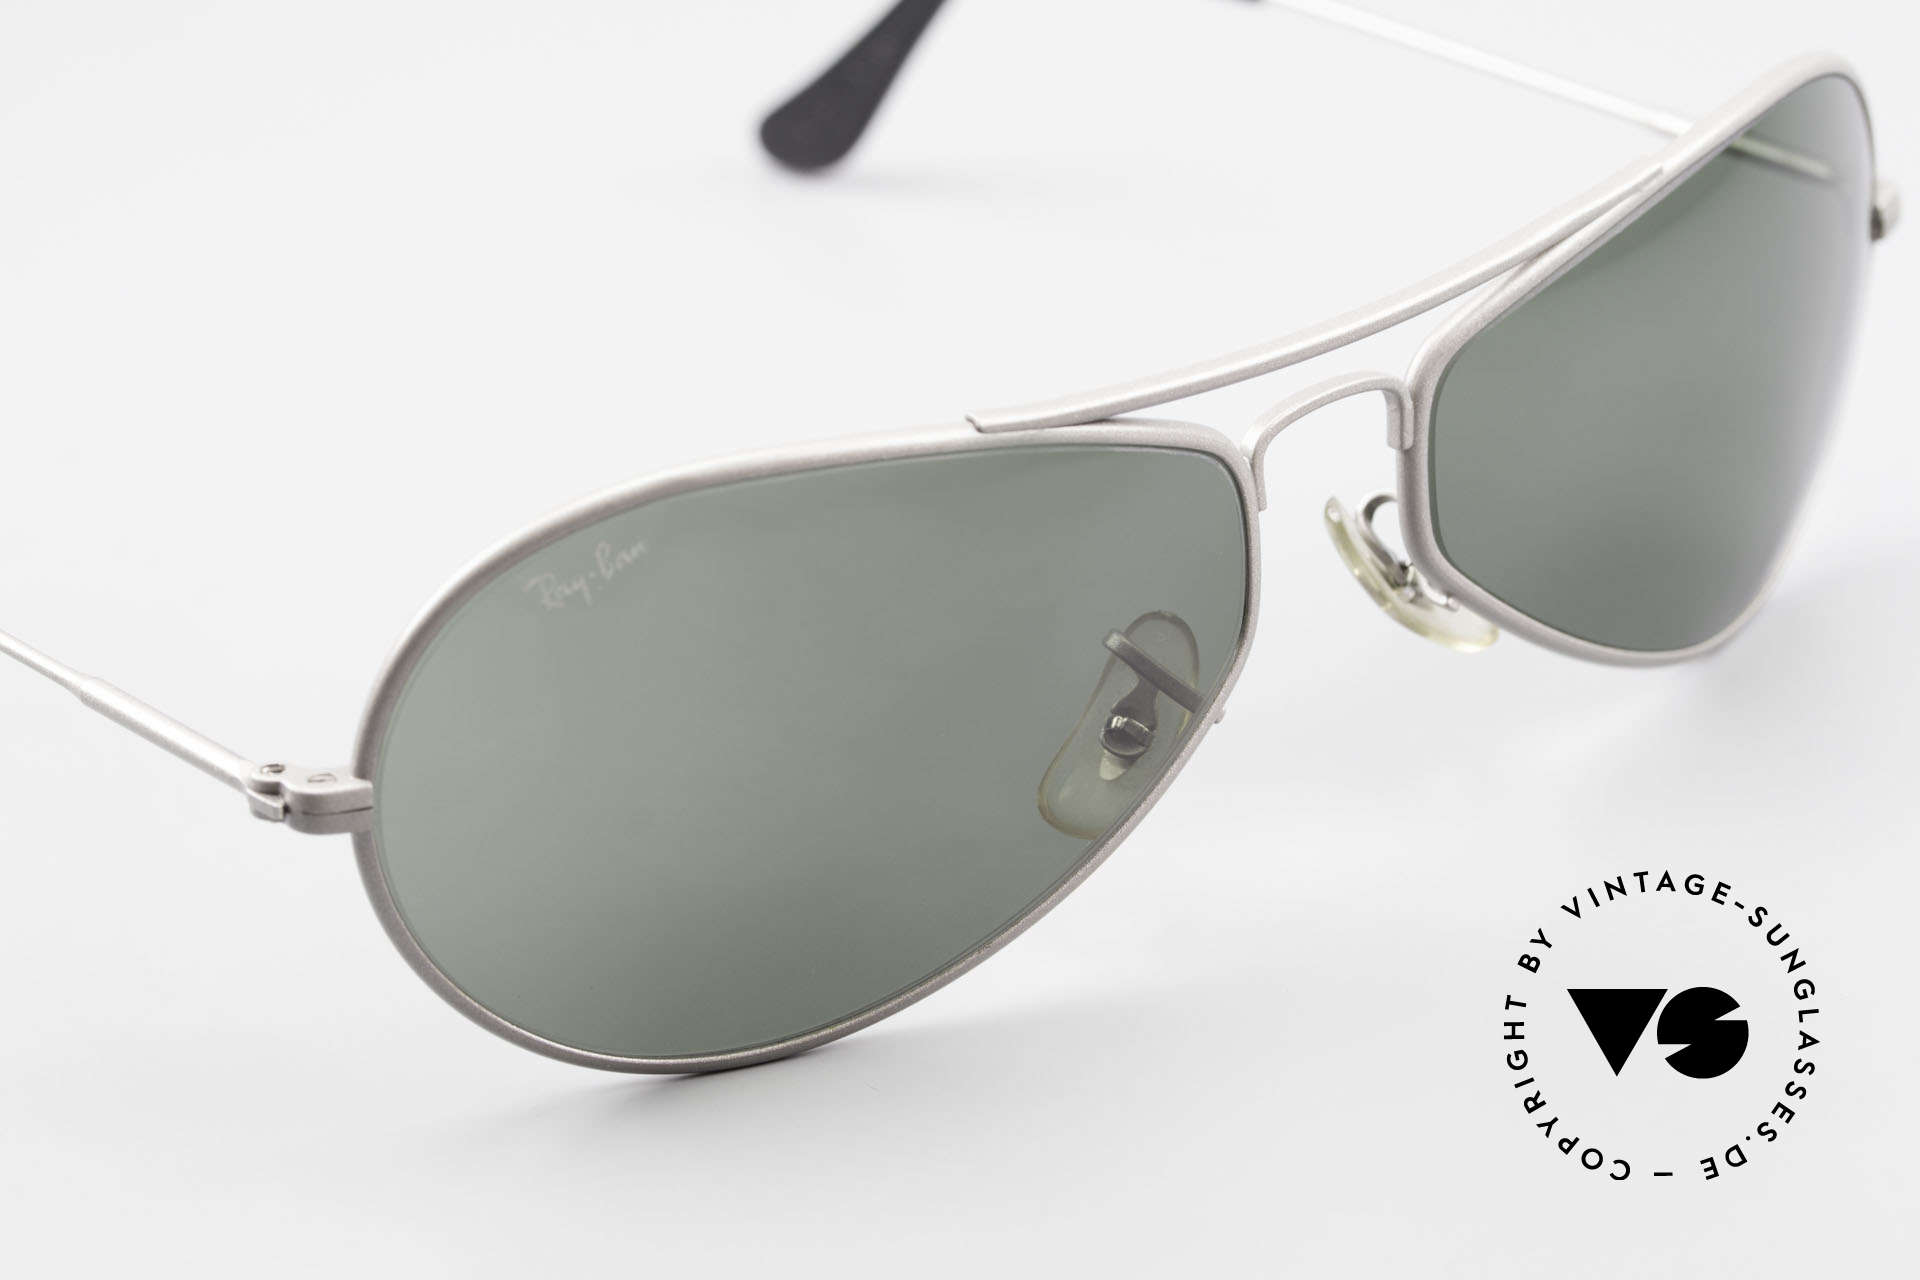 Ray Ban Air Boss Sporty 90's USA Ray-Ban Model, name: B&L RB W2617 Air Boss, matte gunmetal, Made for Men and Women